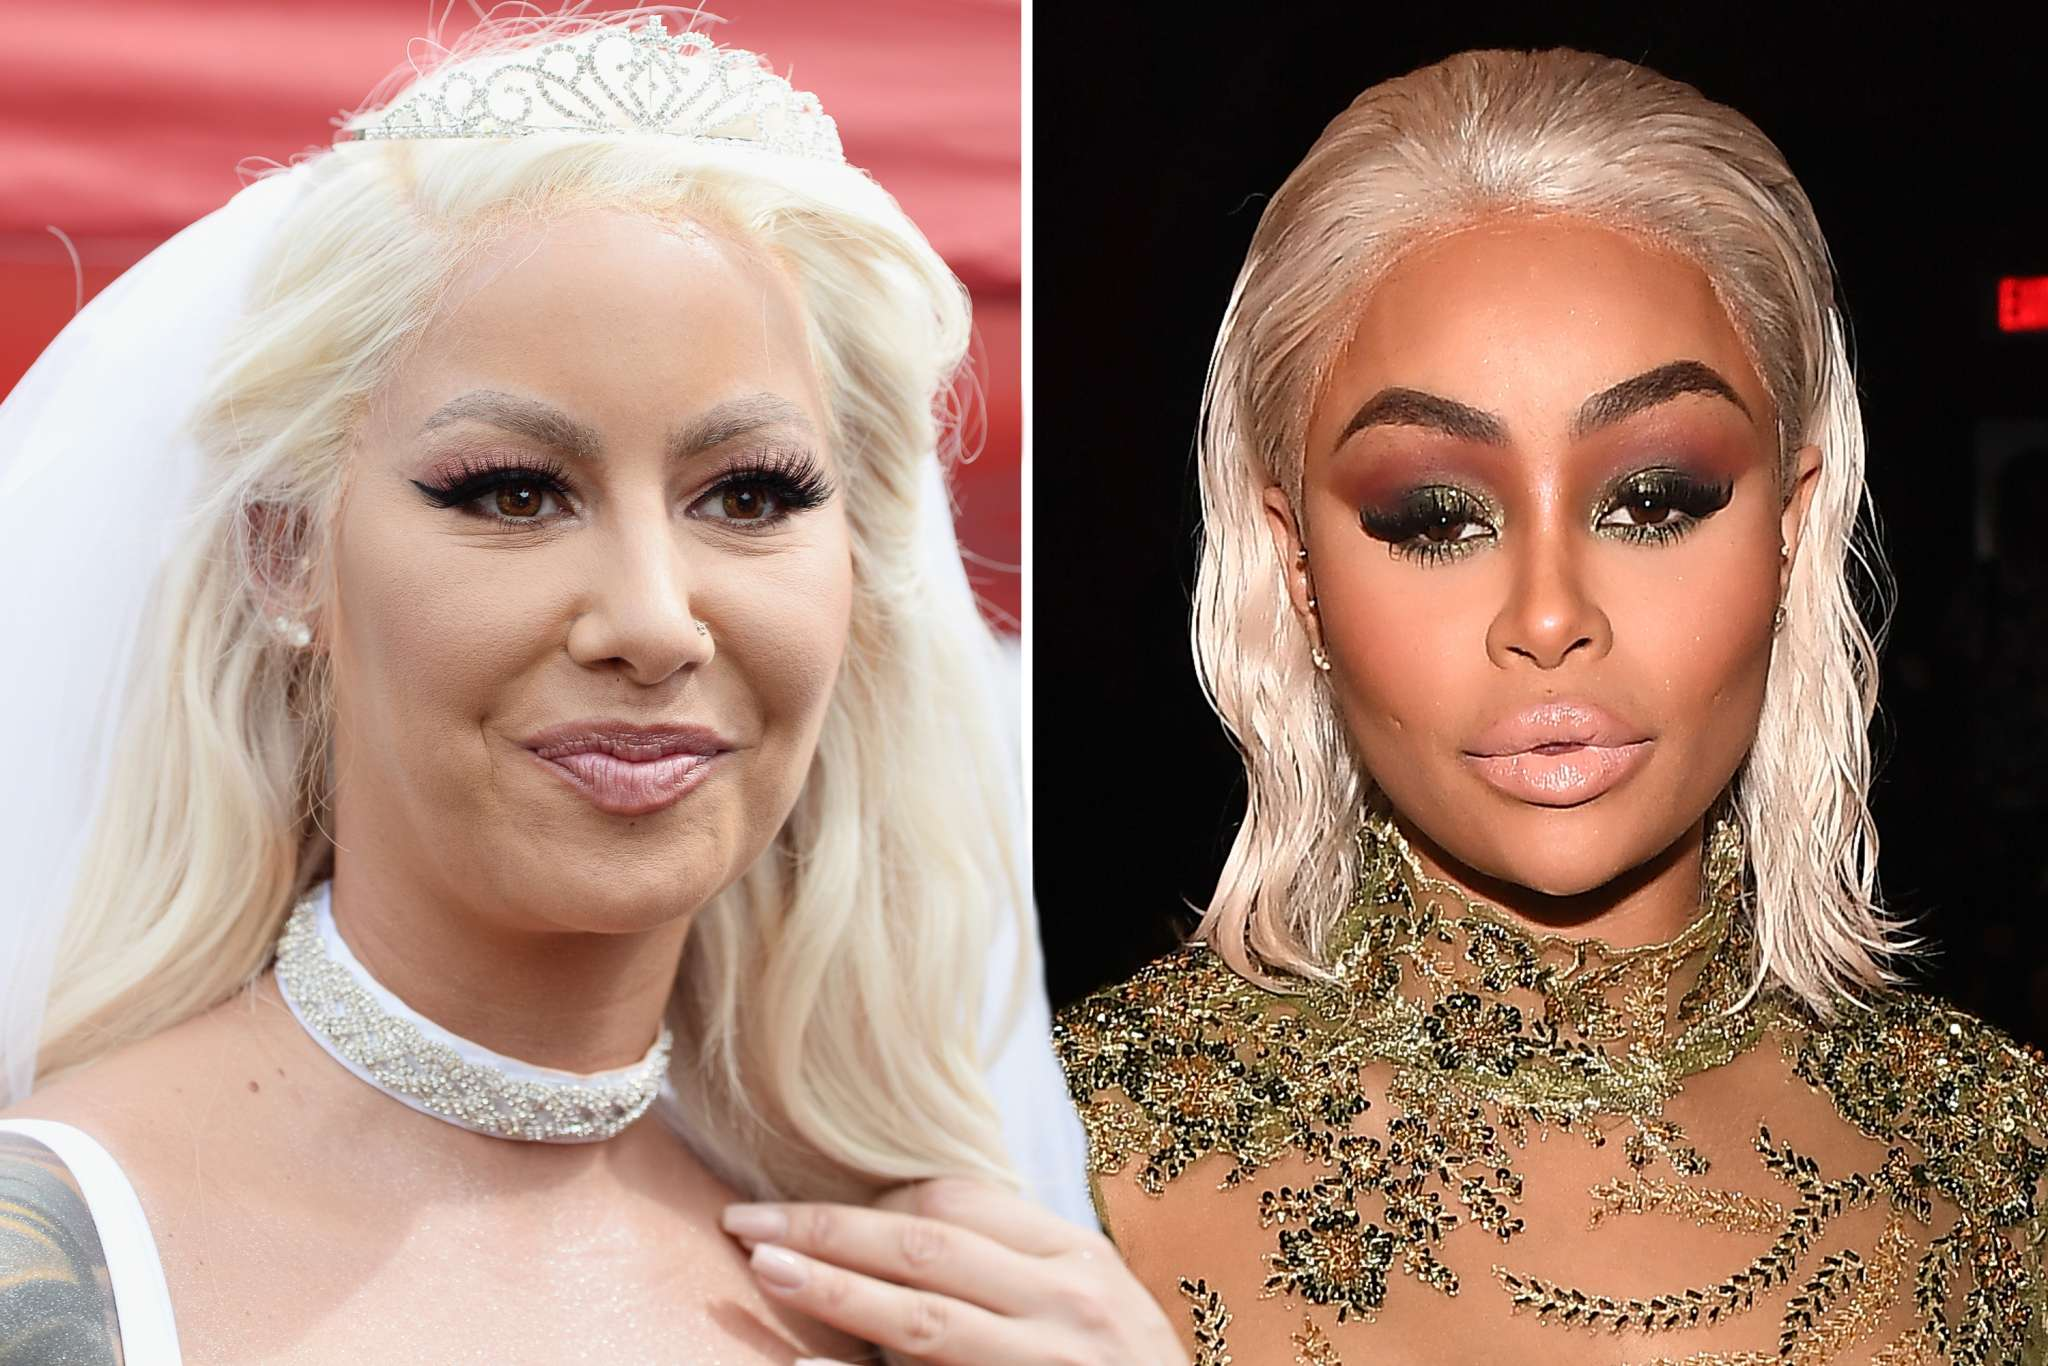 Blac Chyna's BFF Amber Rose Hangs Out With Her Baby Daddy, Tyga At Pre-Grammy Party